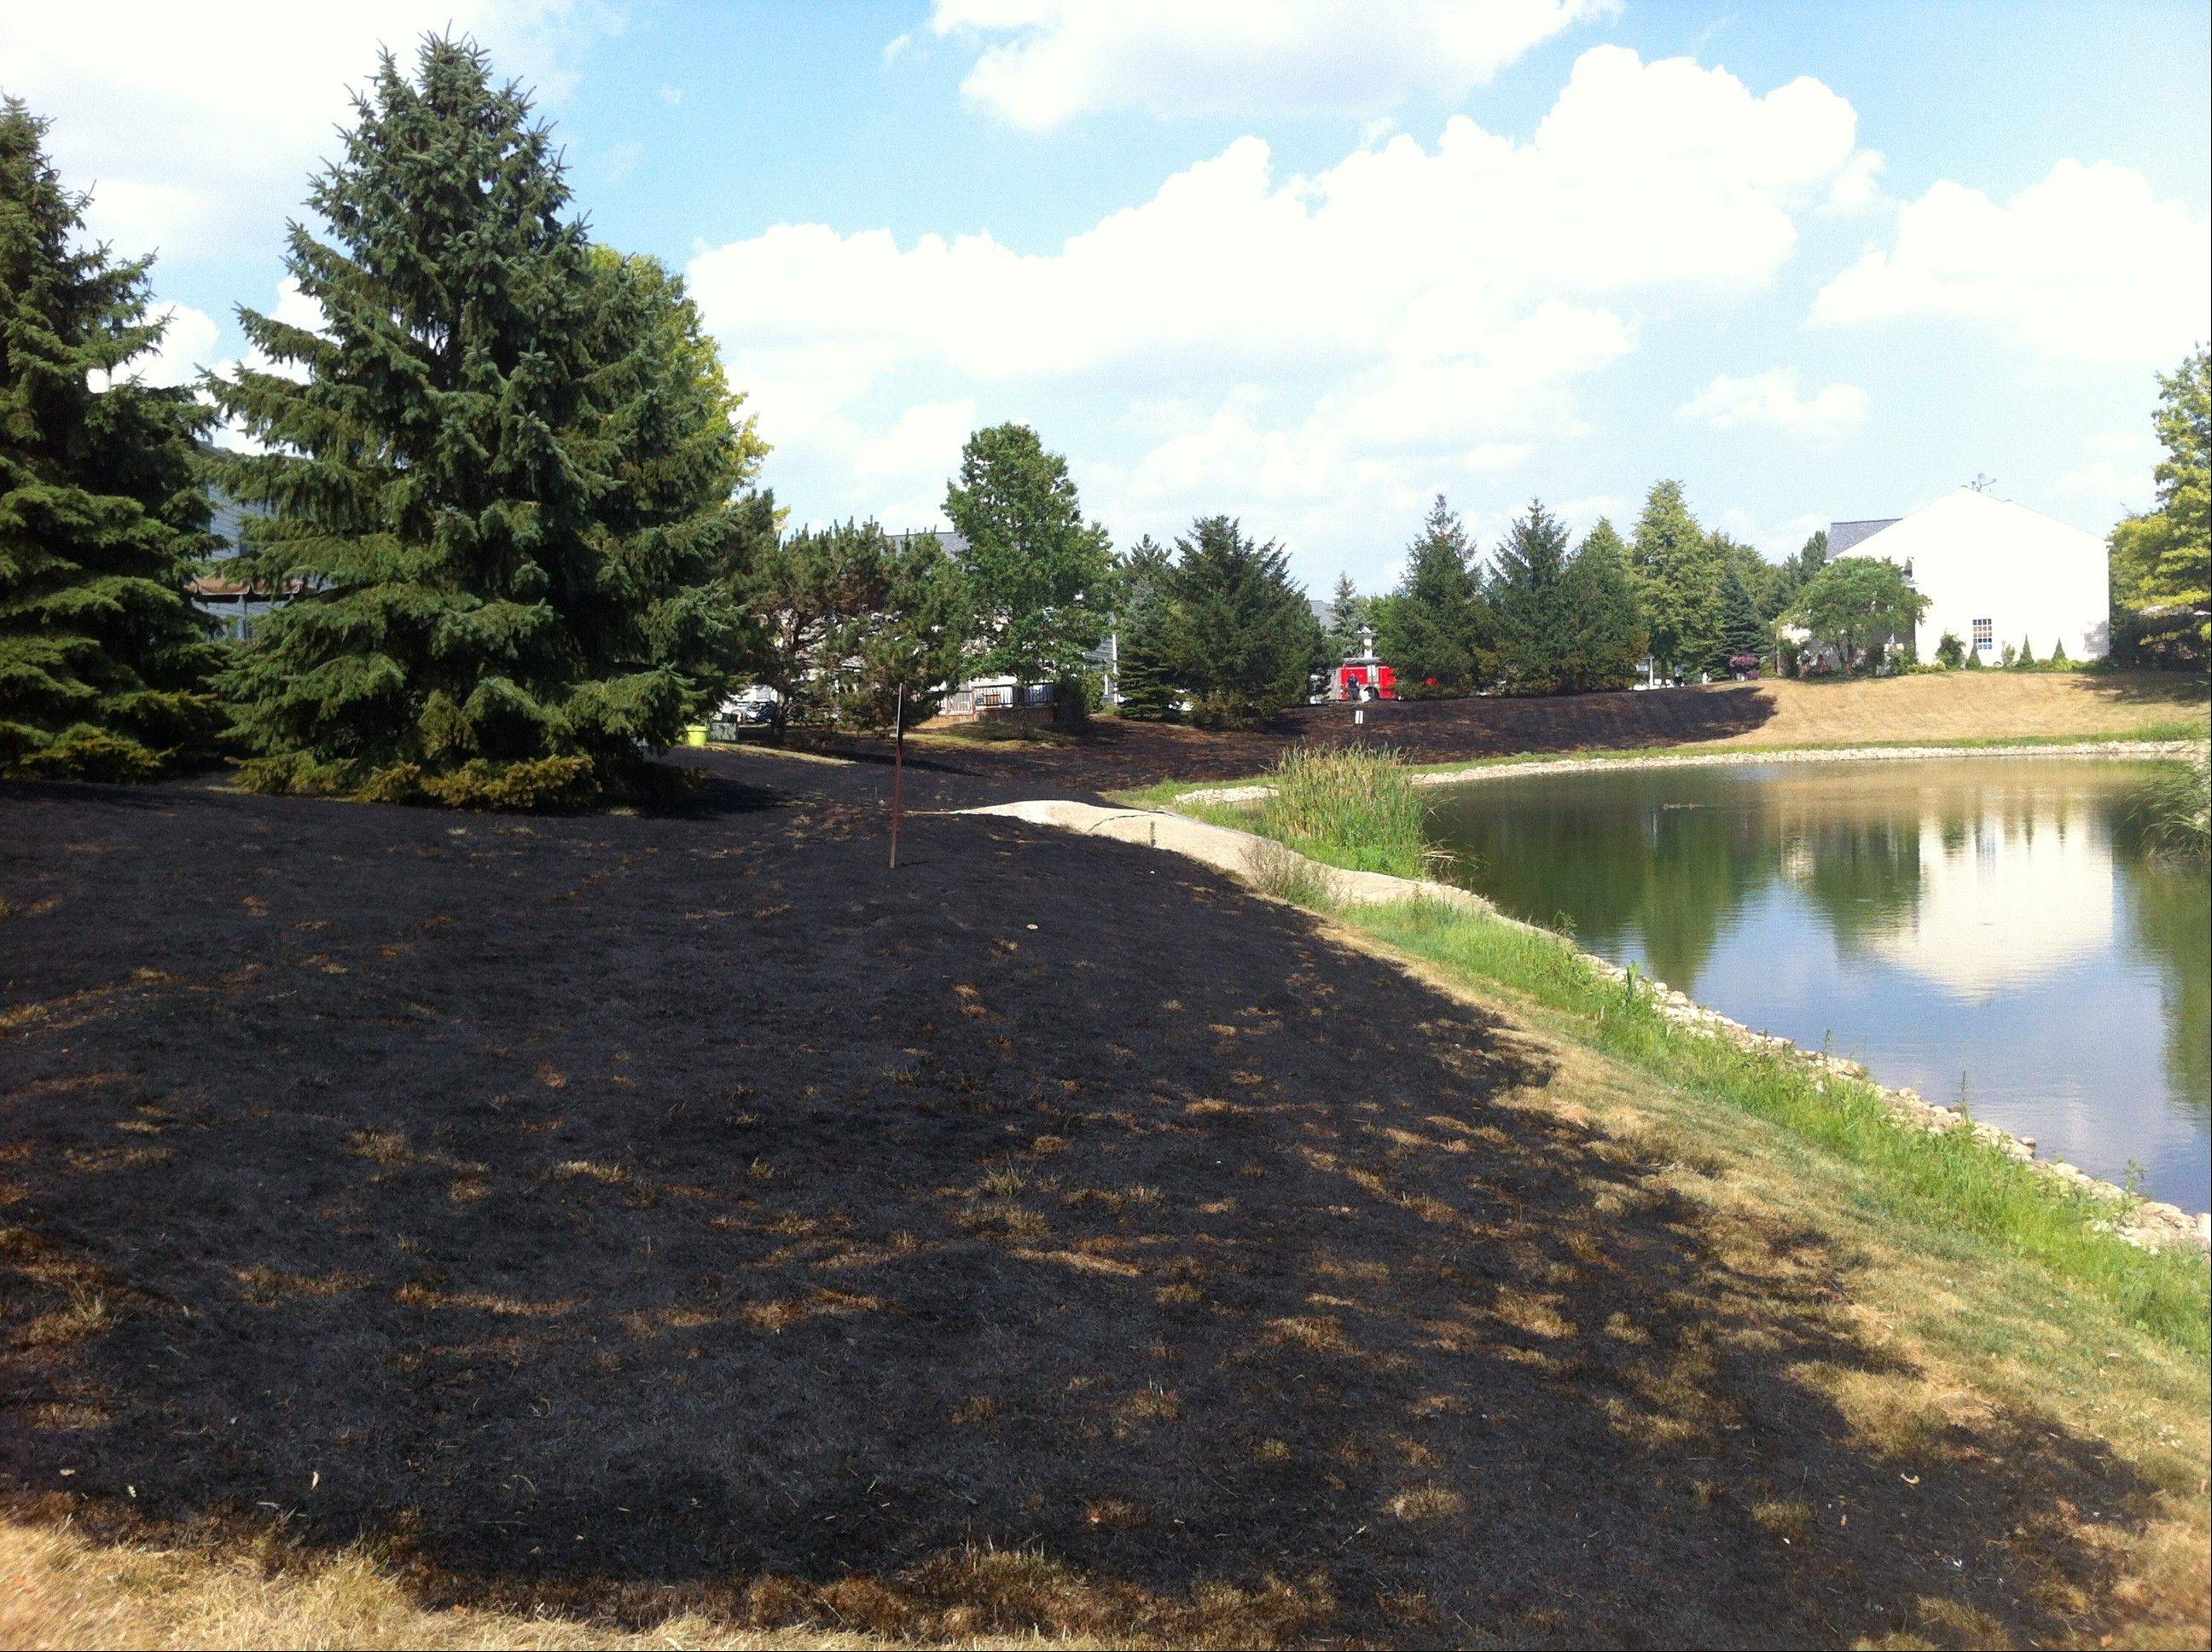 Grass fire burns through Bartlett backyards